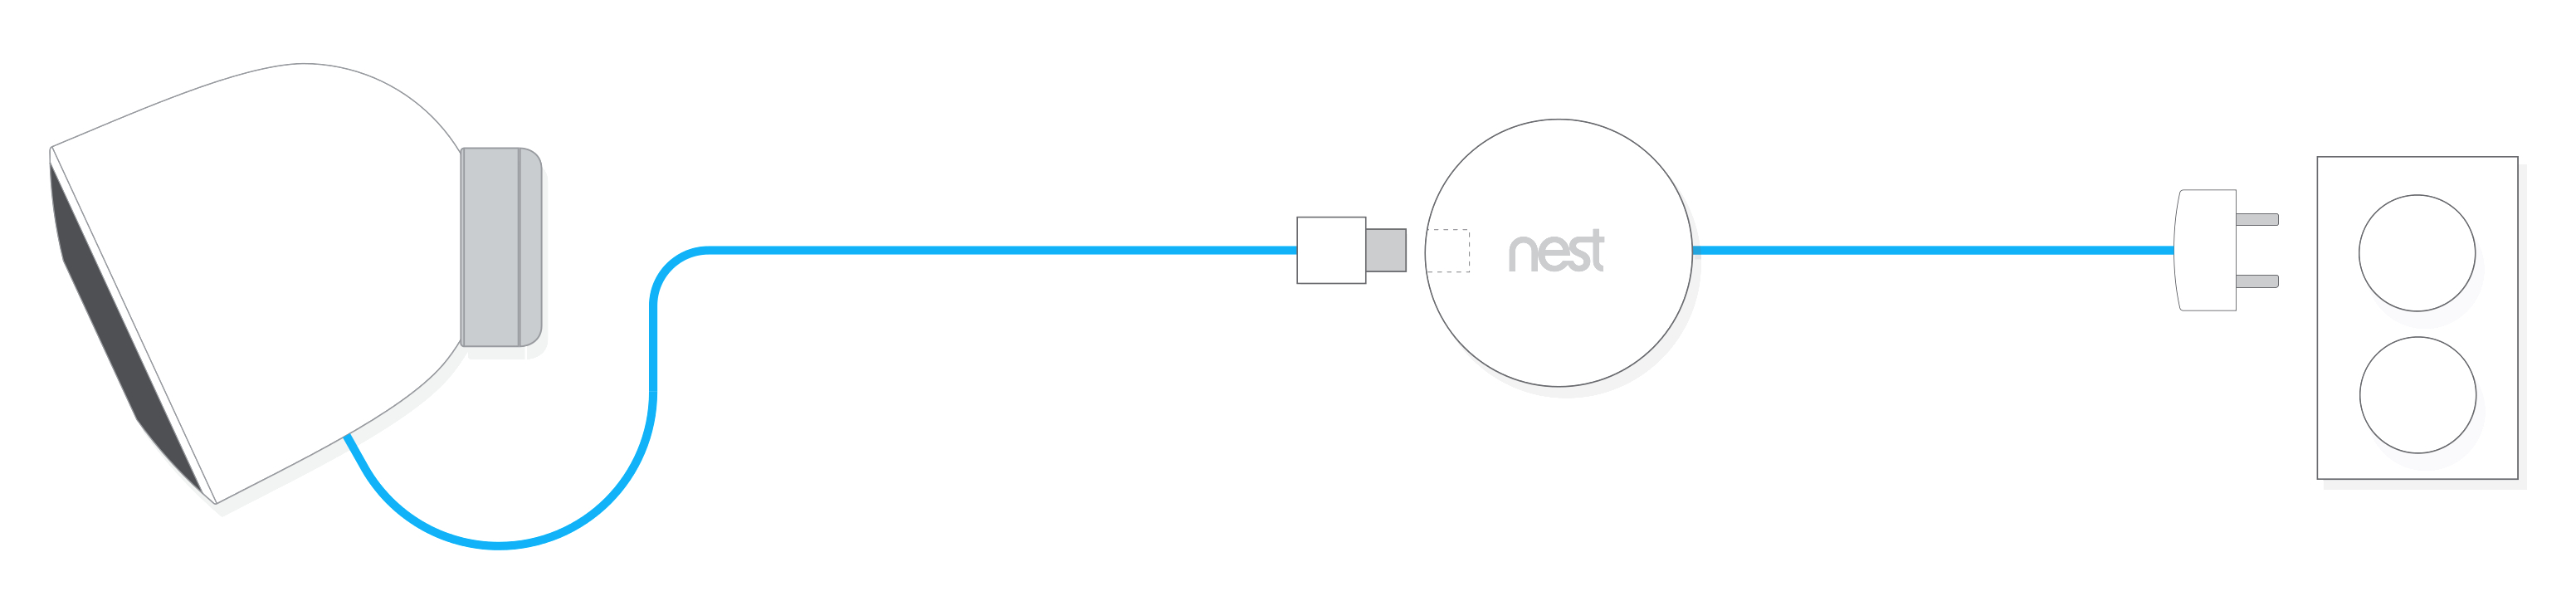 Faqs About Outdoor Nest Cameras - Nest Wiring Diagram Single Wire